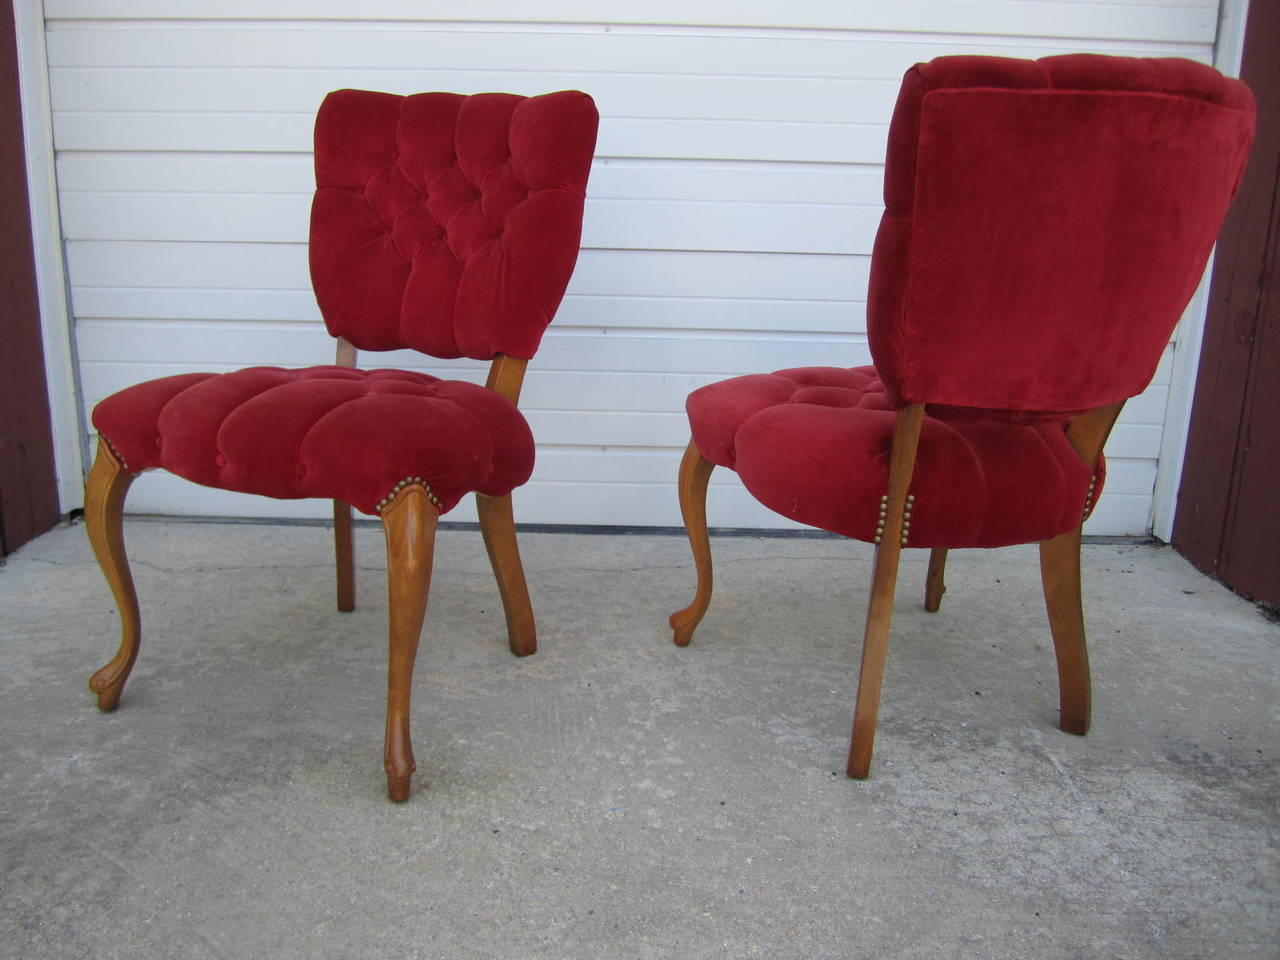 Charmant Lovely Pair Of Queen Anne Style Red Velvet Tufted Side Chairs. These Chairs  Are Circa